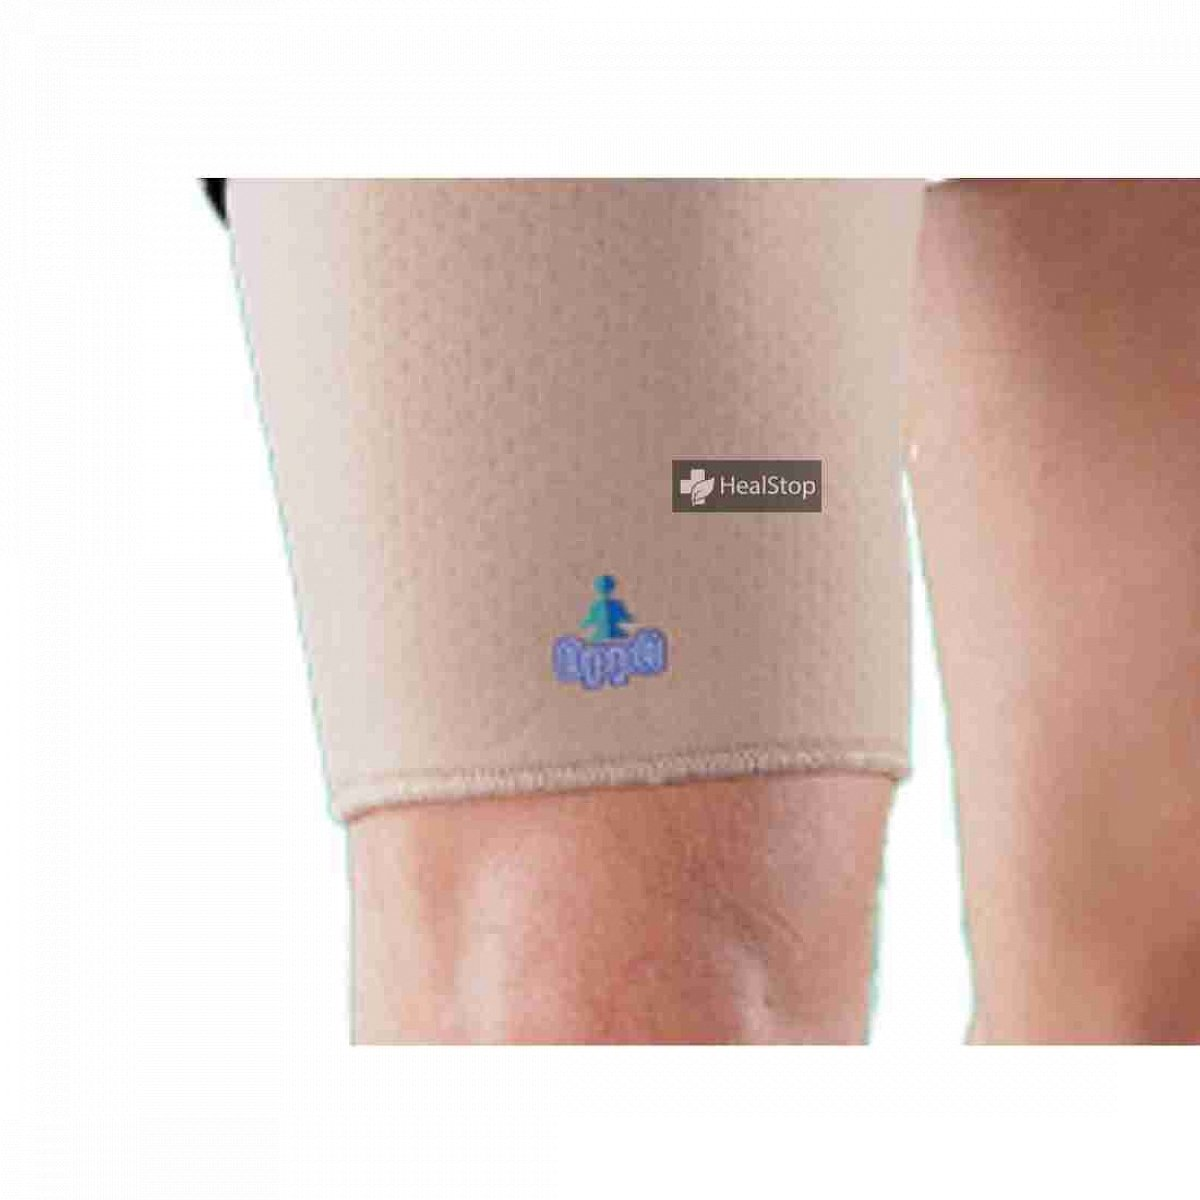 Thigh Support Small